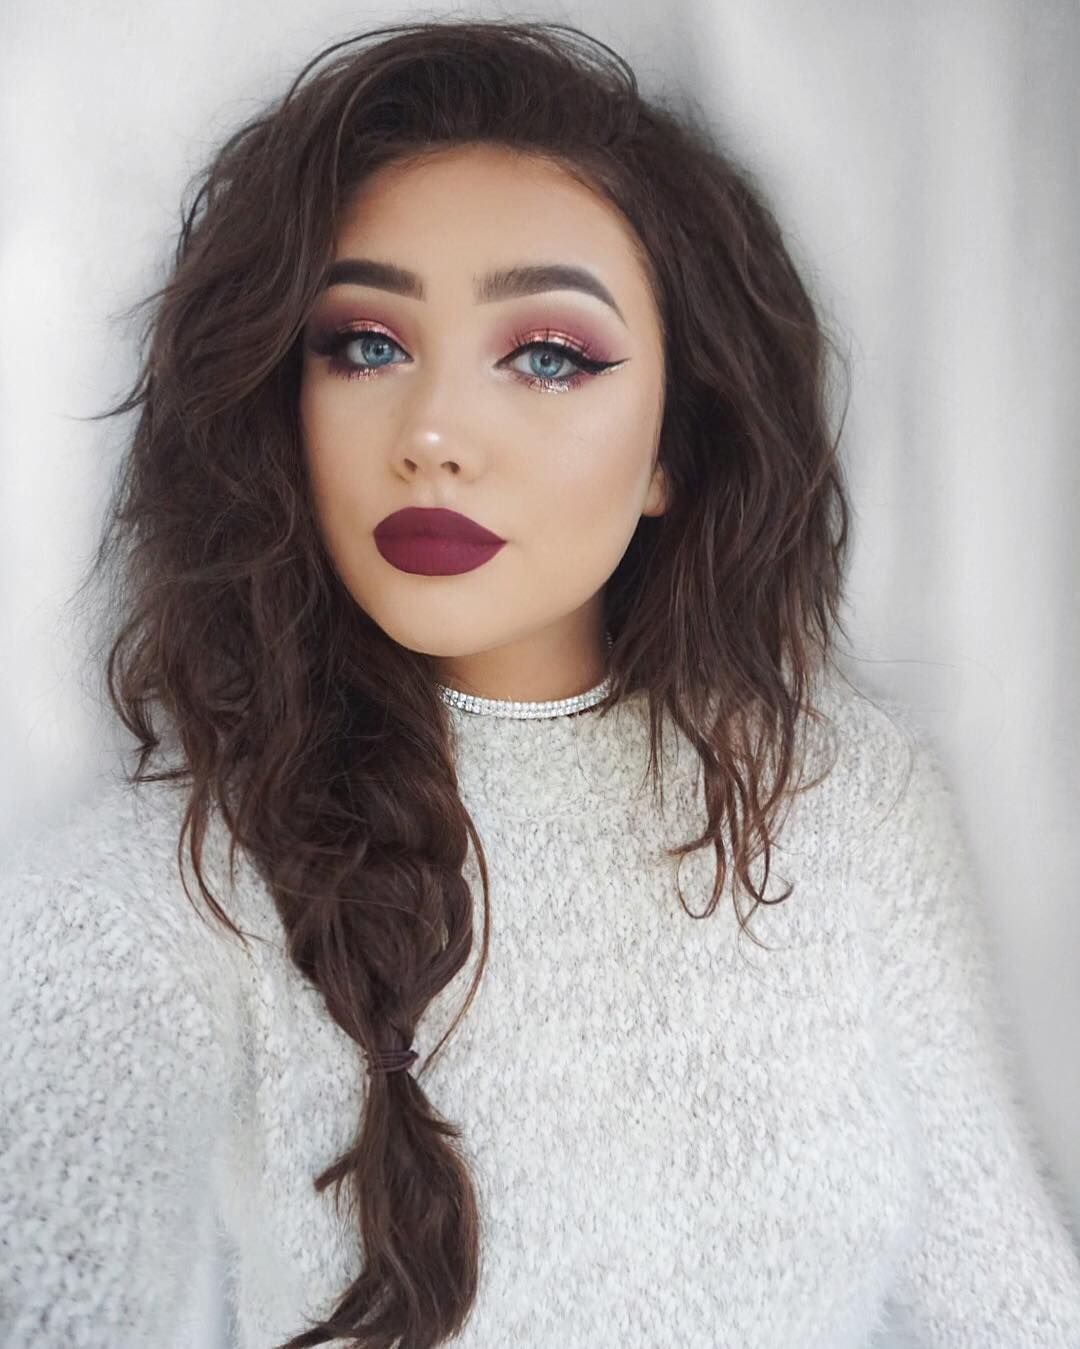 a2ce9a804cf G i n a B o x ♡ (@ohmygeeee) • Instagram photos and videos Cute Makeup